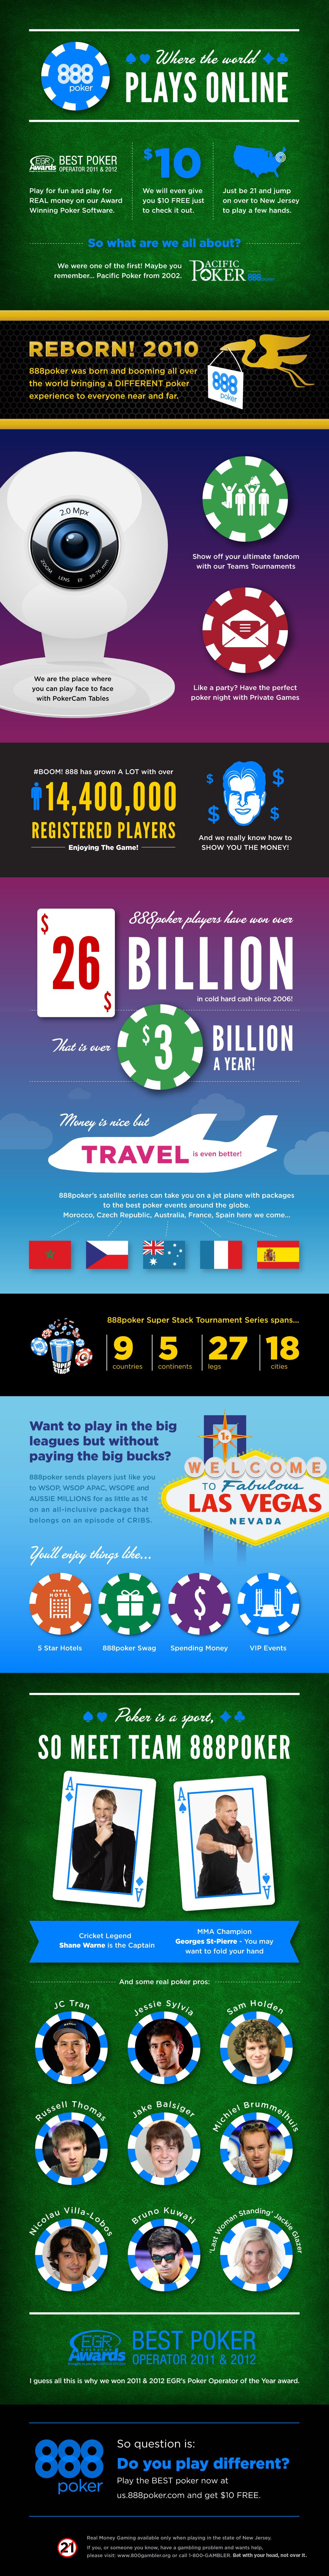 888poker – where the world plays online